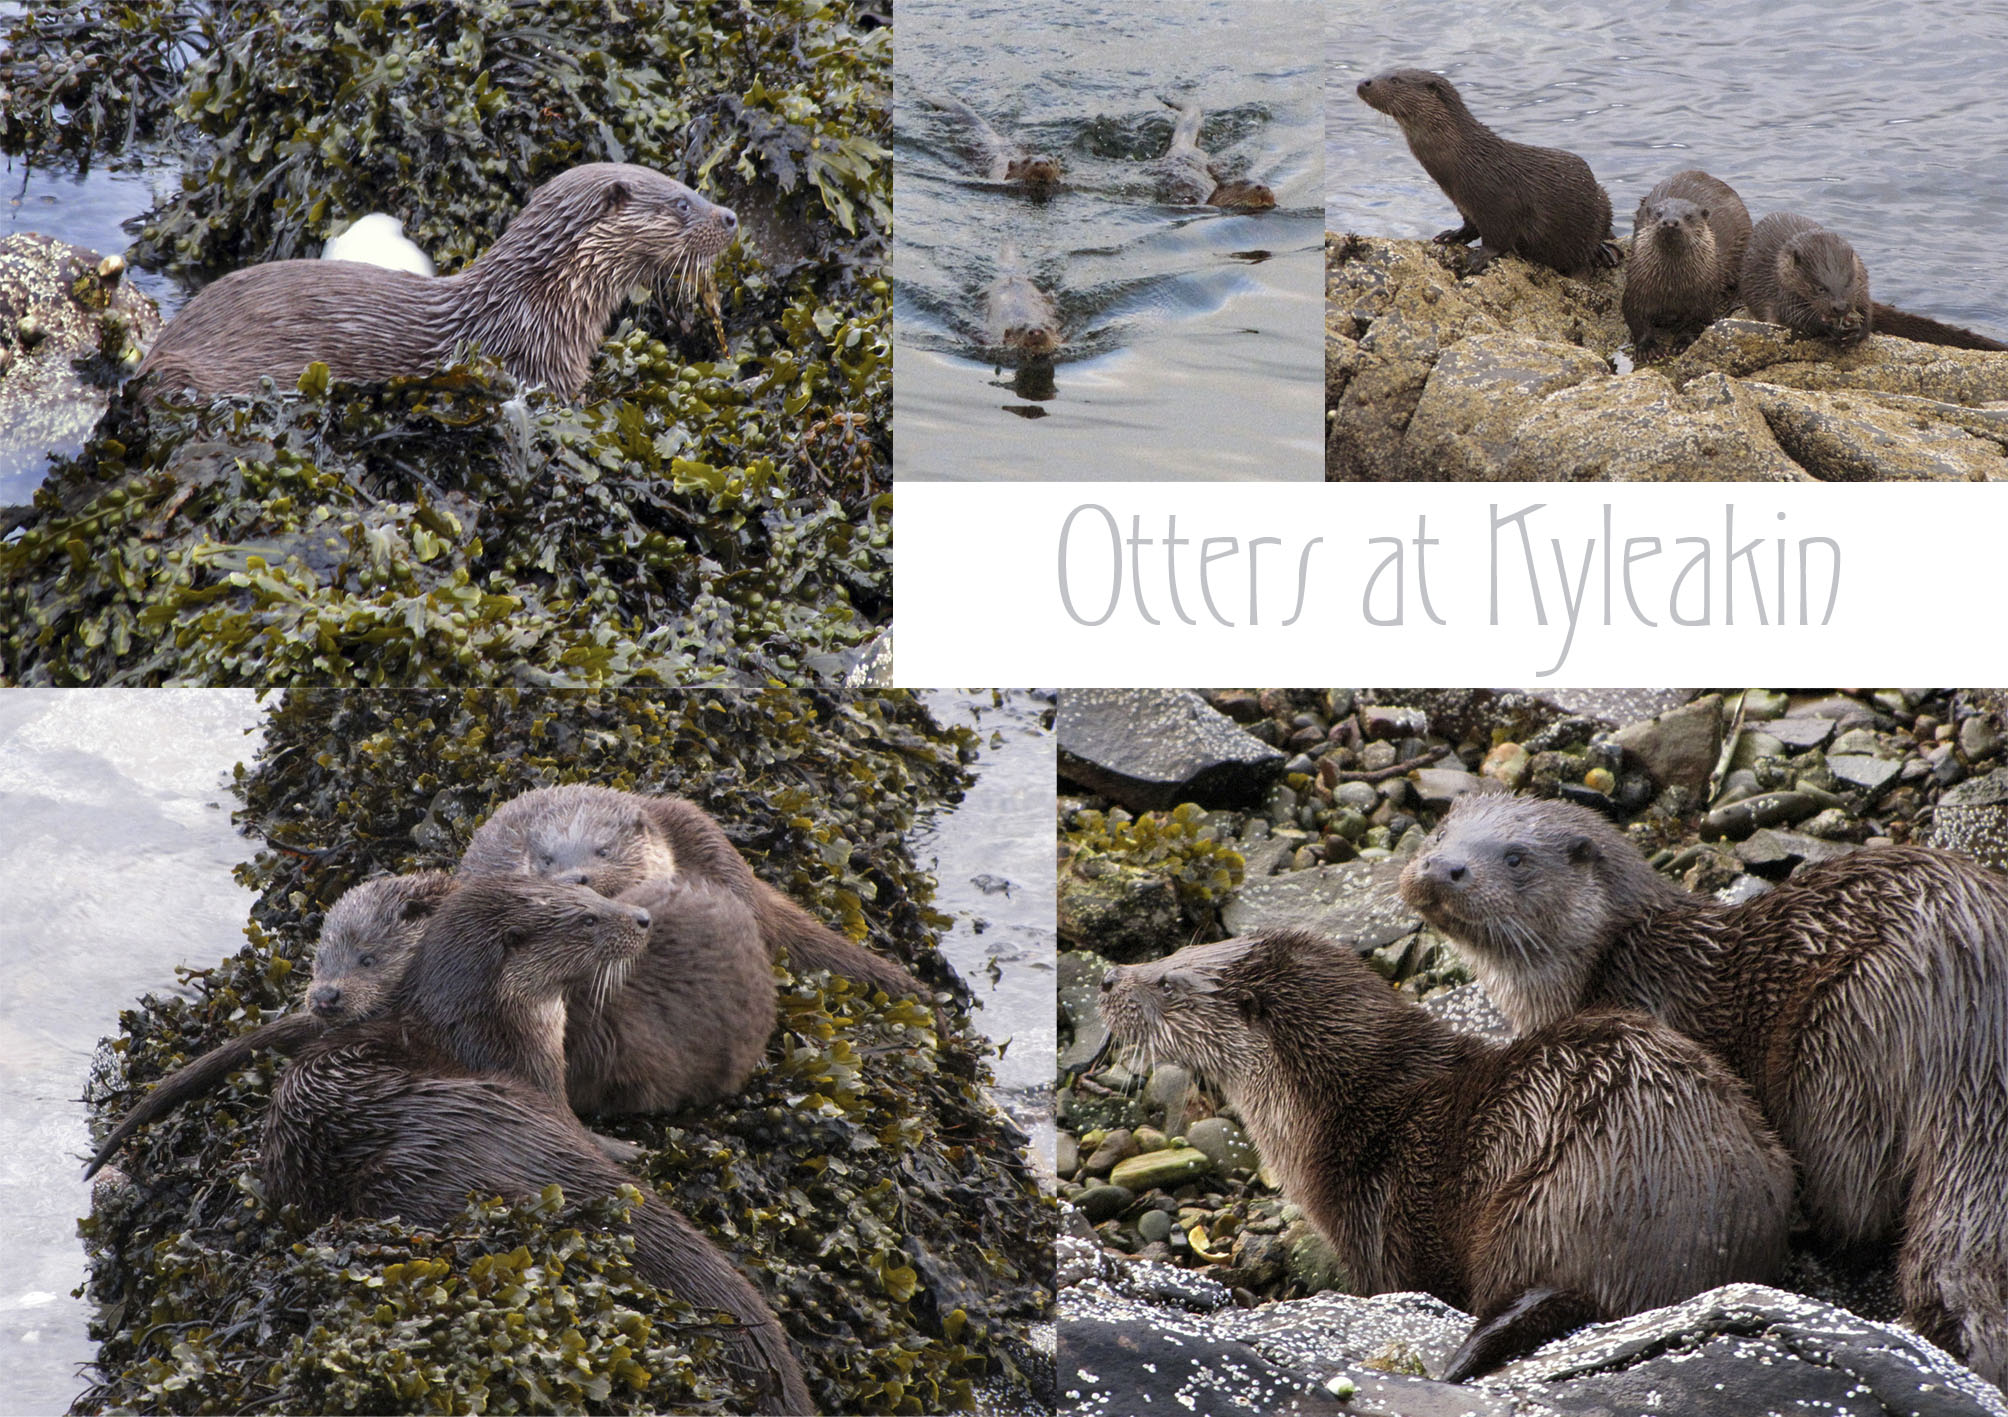 Otter Family at Kyleakin - click to see larger image